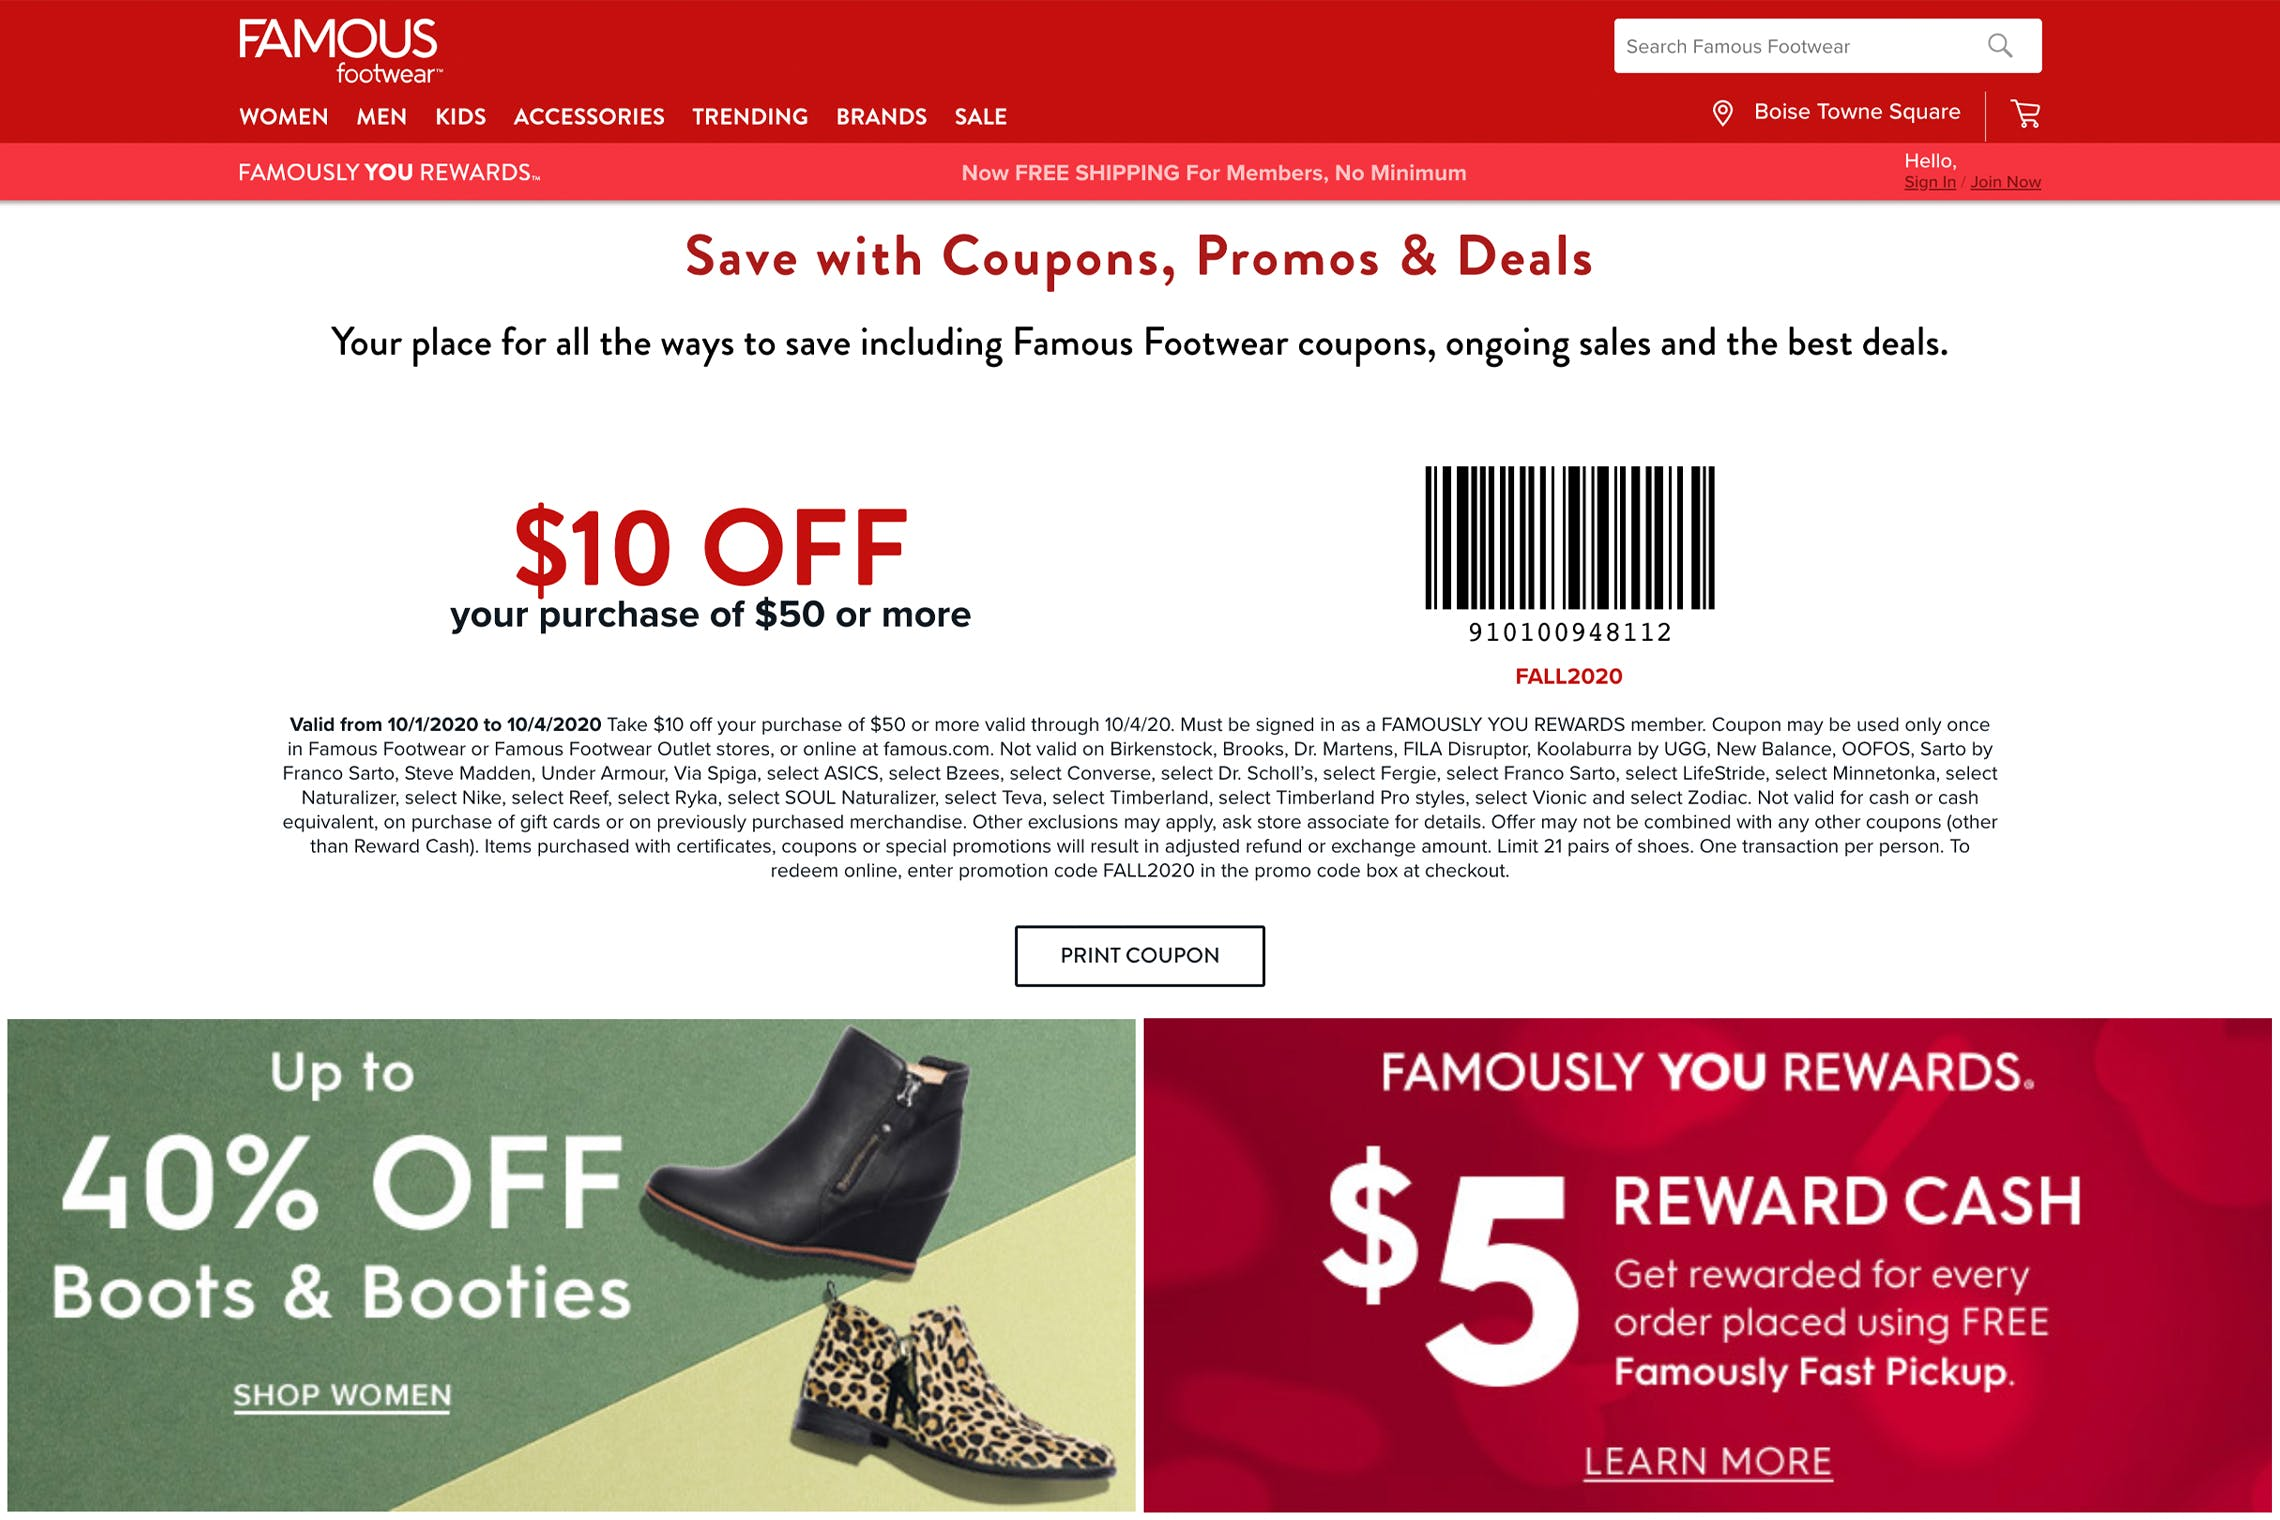 16 Famous Footwear Coupons and Tricks